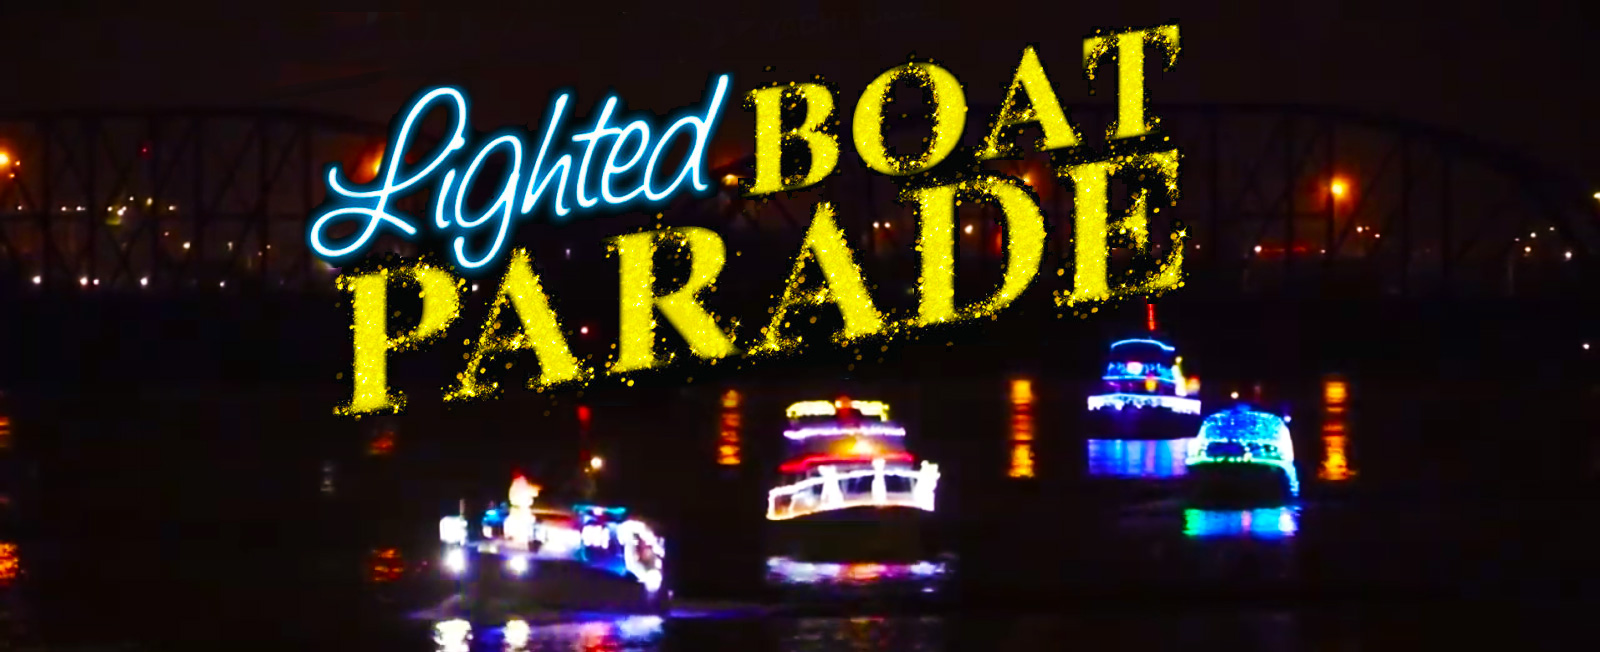 Kennewick Hotel clover-island-lighted-boat-parade